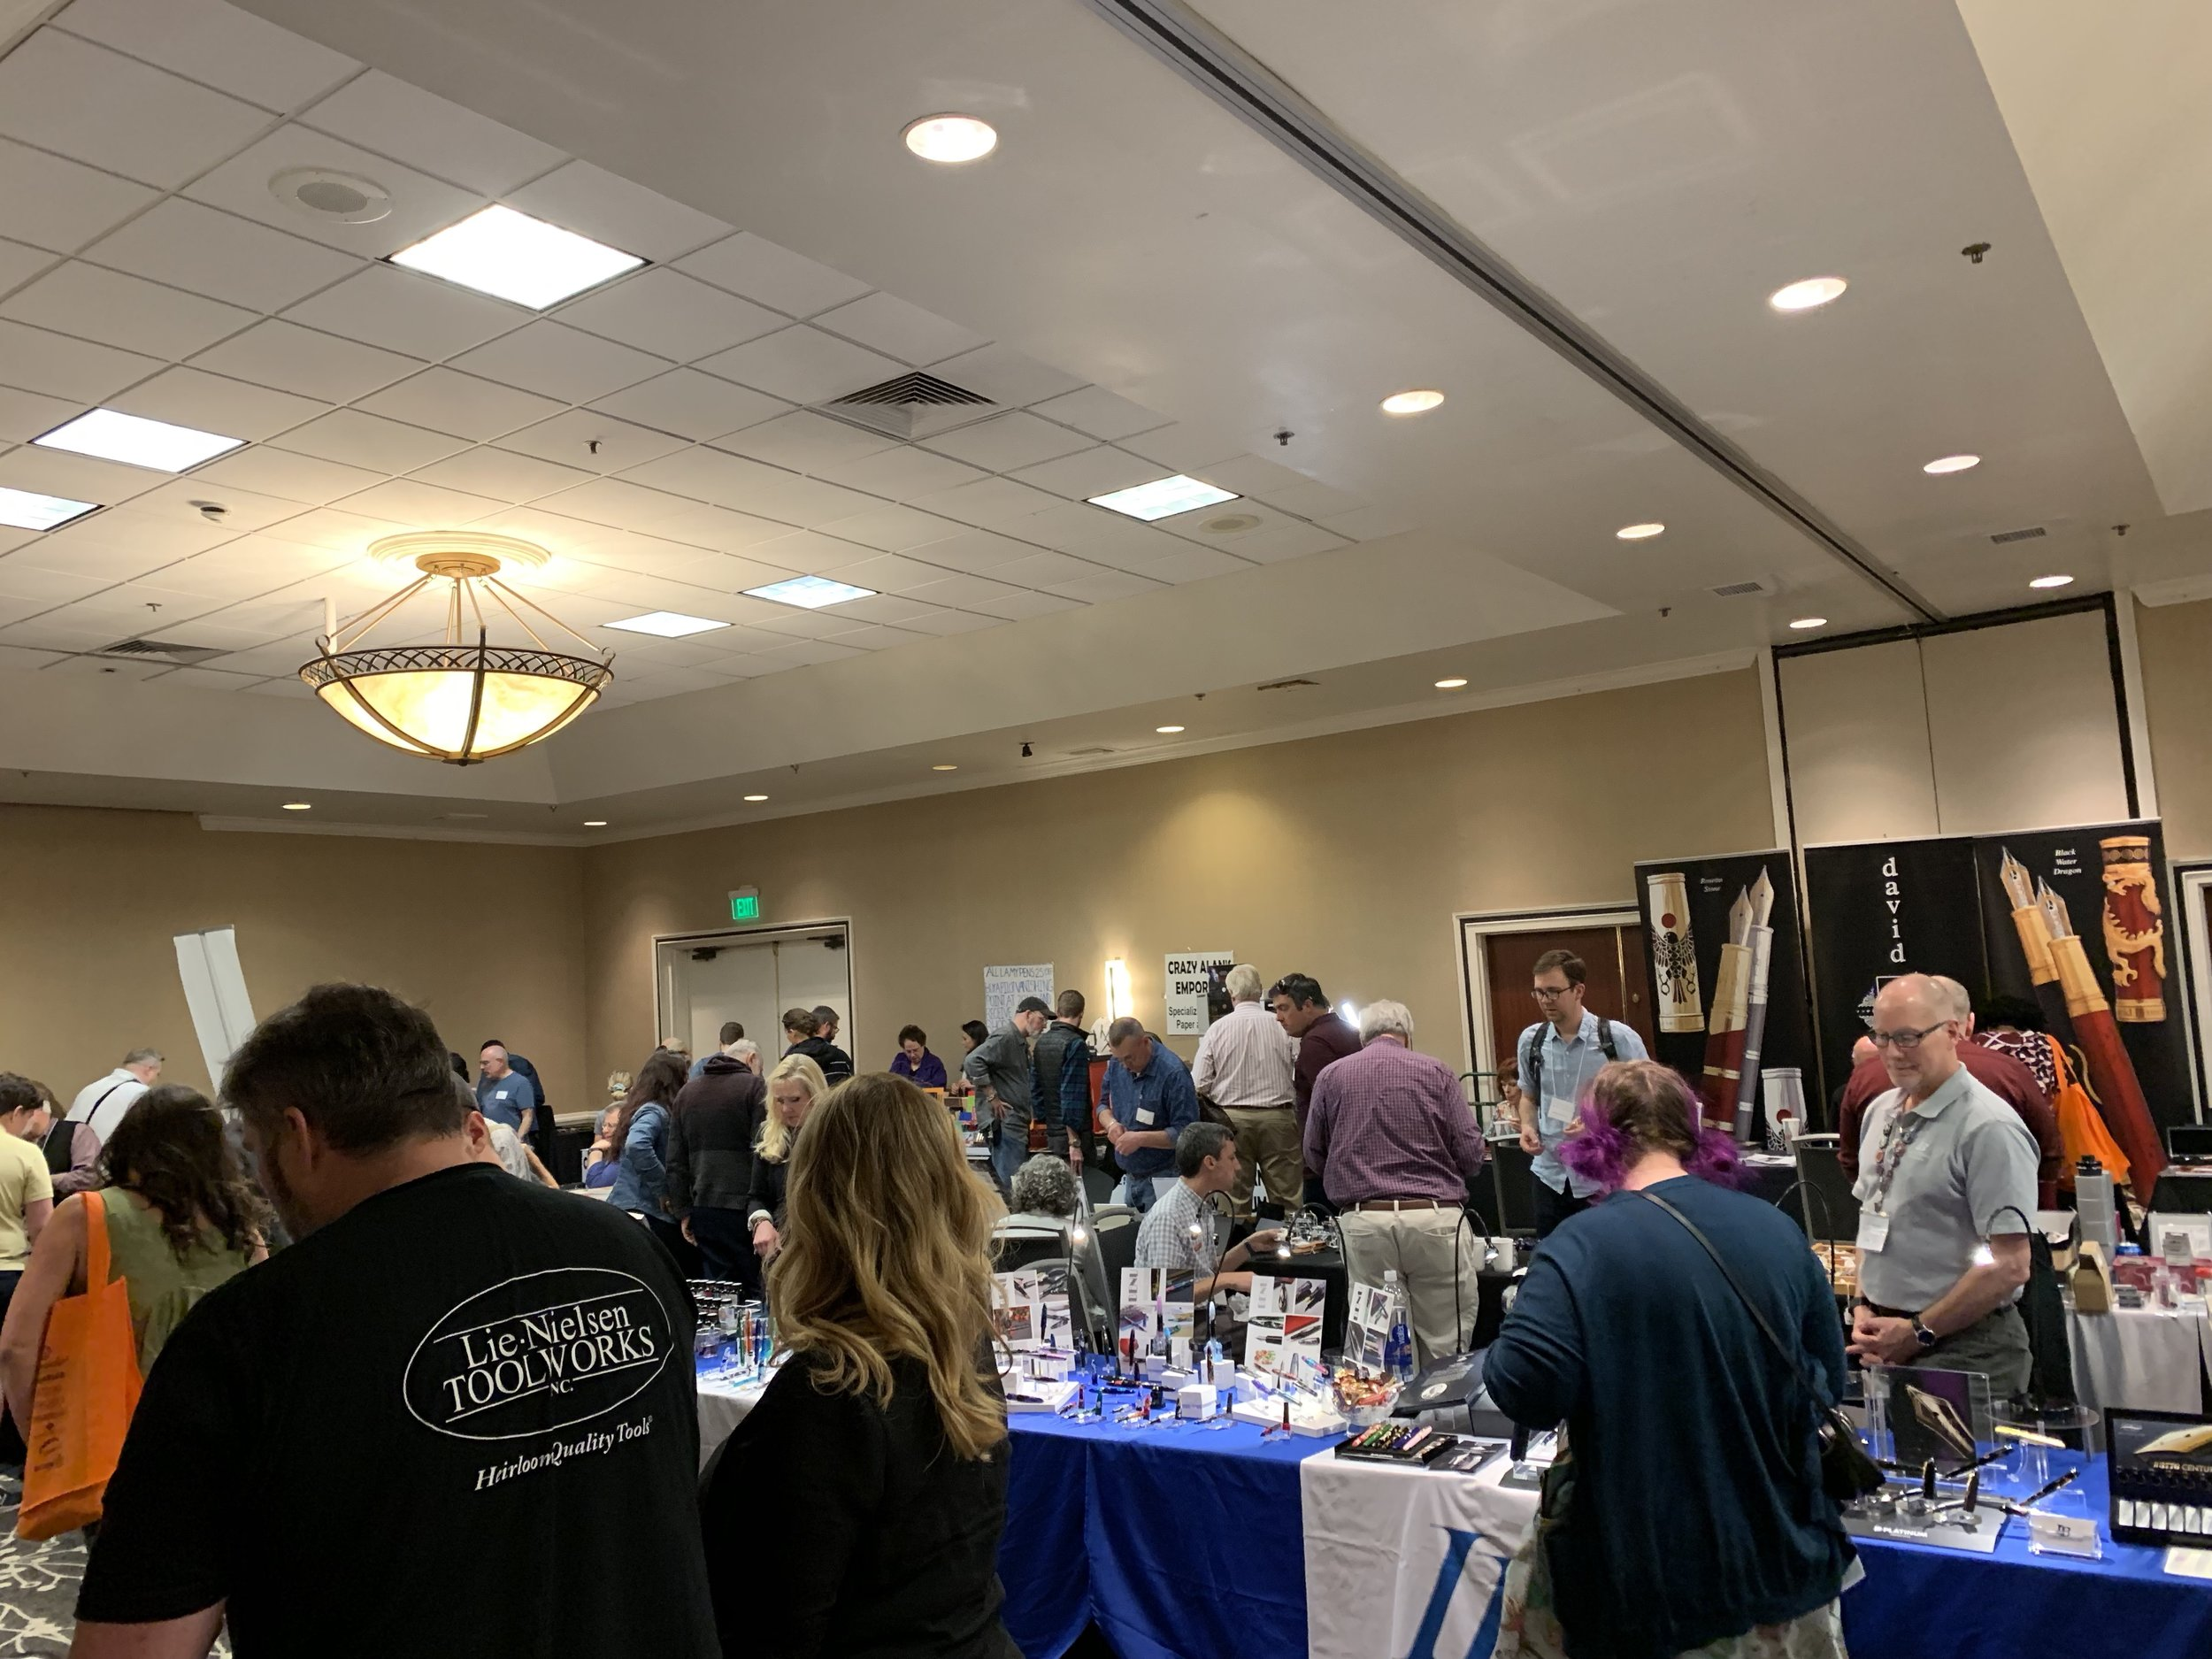 The 2019 Atlanta Pen Show was quite the event, and always lives up to its billing! Look for a recap coming soon!